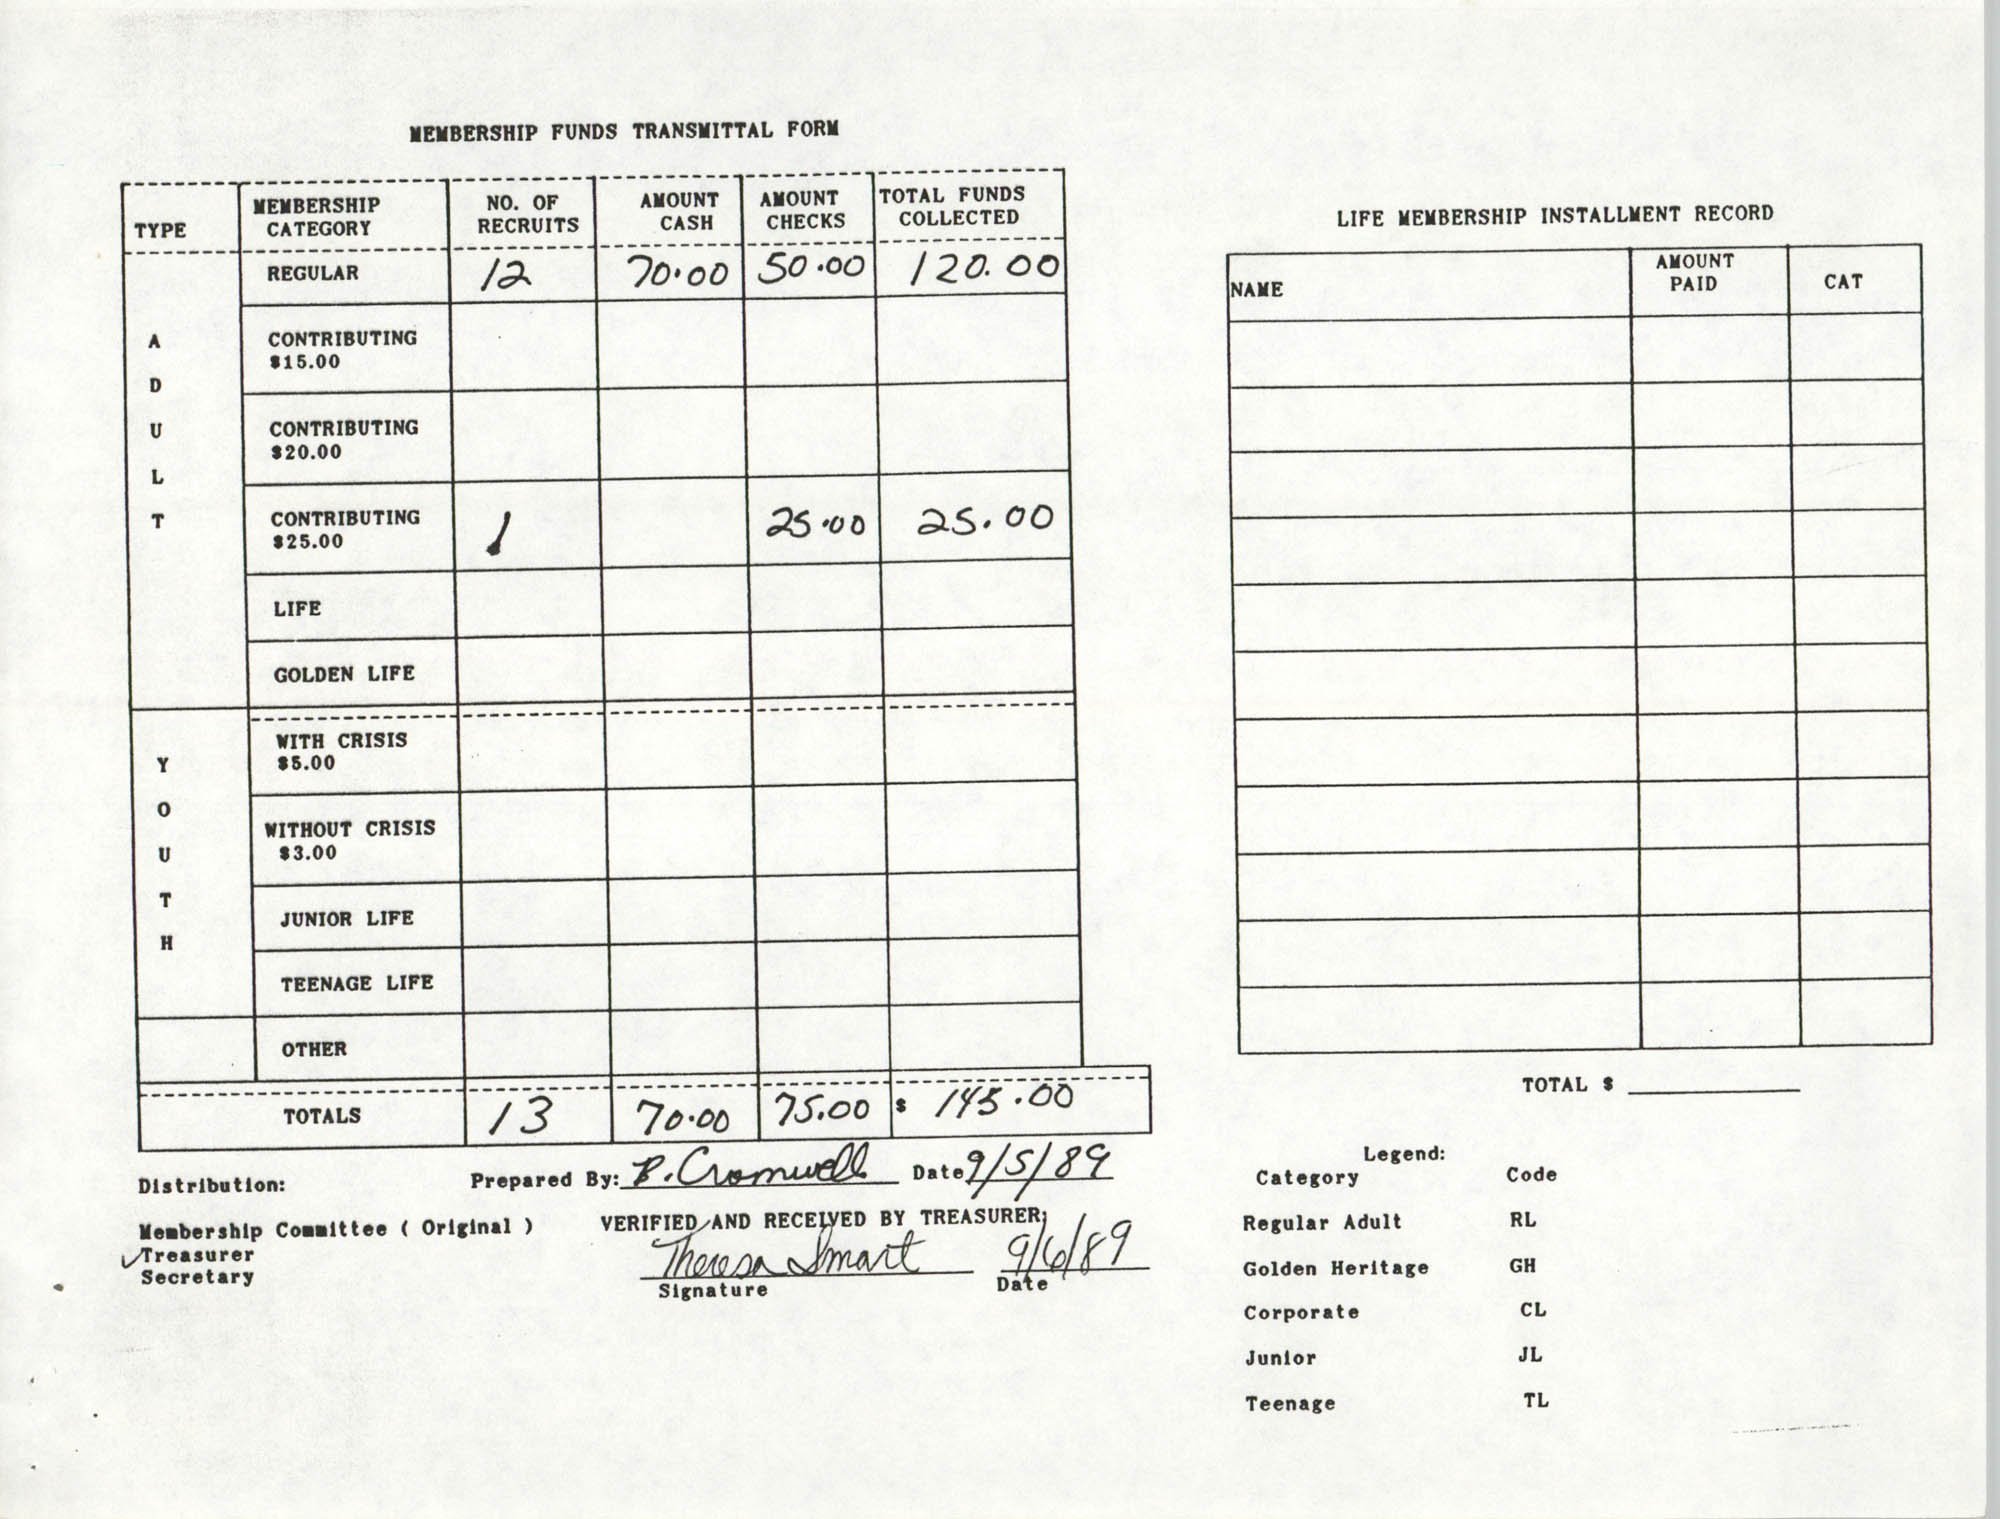 Charleston Branch of the NAACP Funds Transmittal Forms, September 1989, Page 2